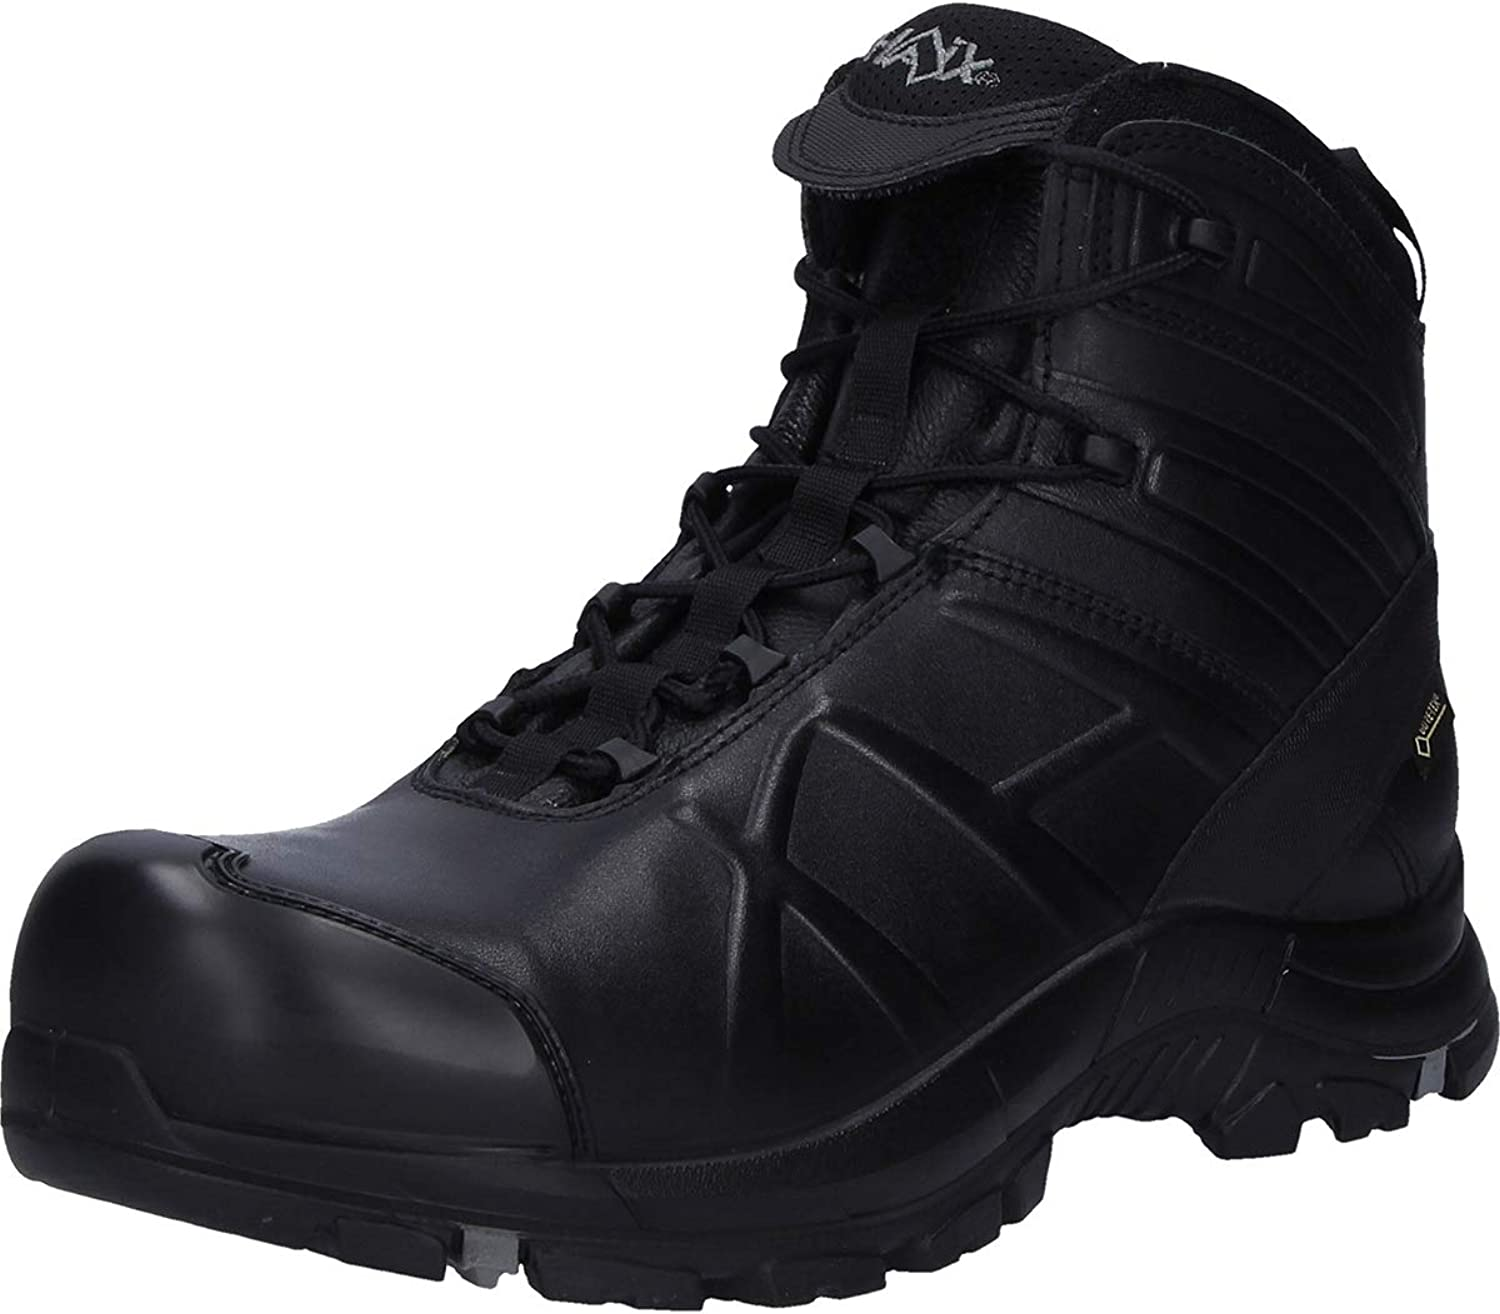 Haix Black Eagle Safety 40.1 Mid Waterproof Safety Lightweight Work Boots Silver